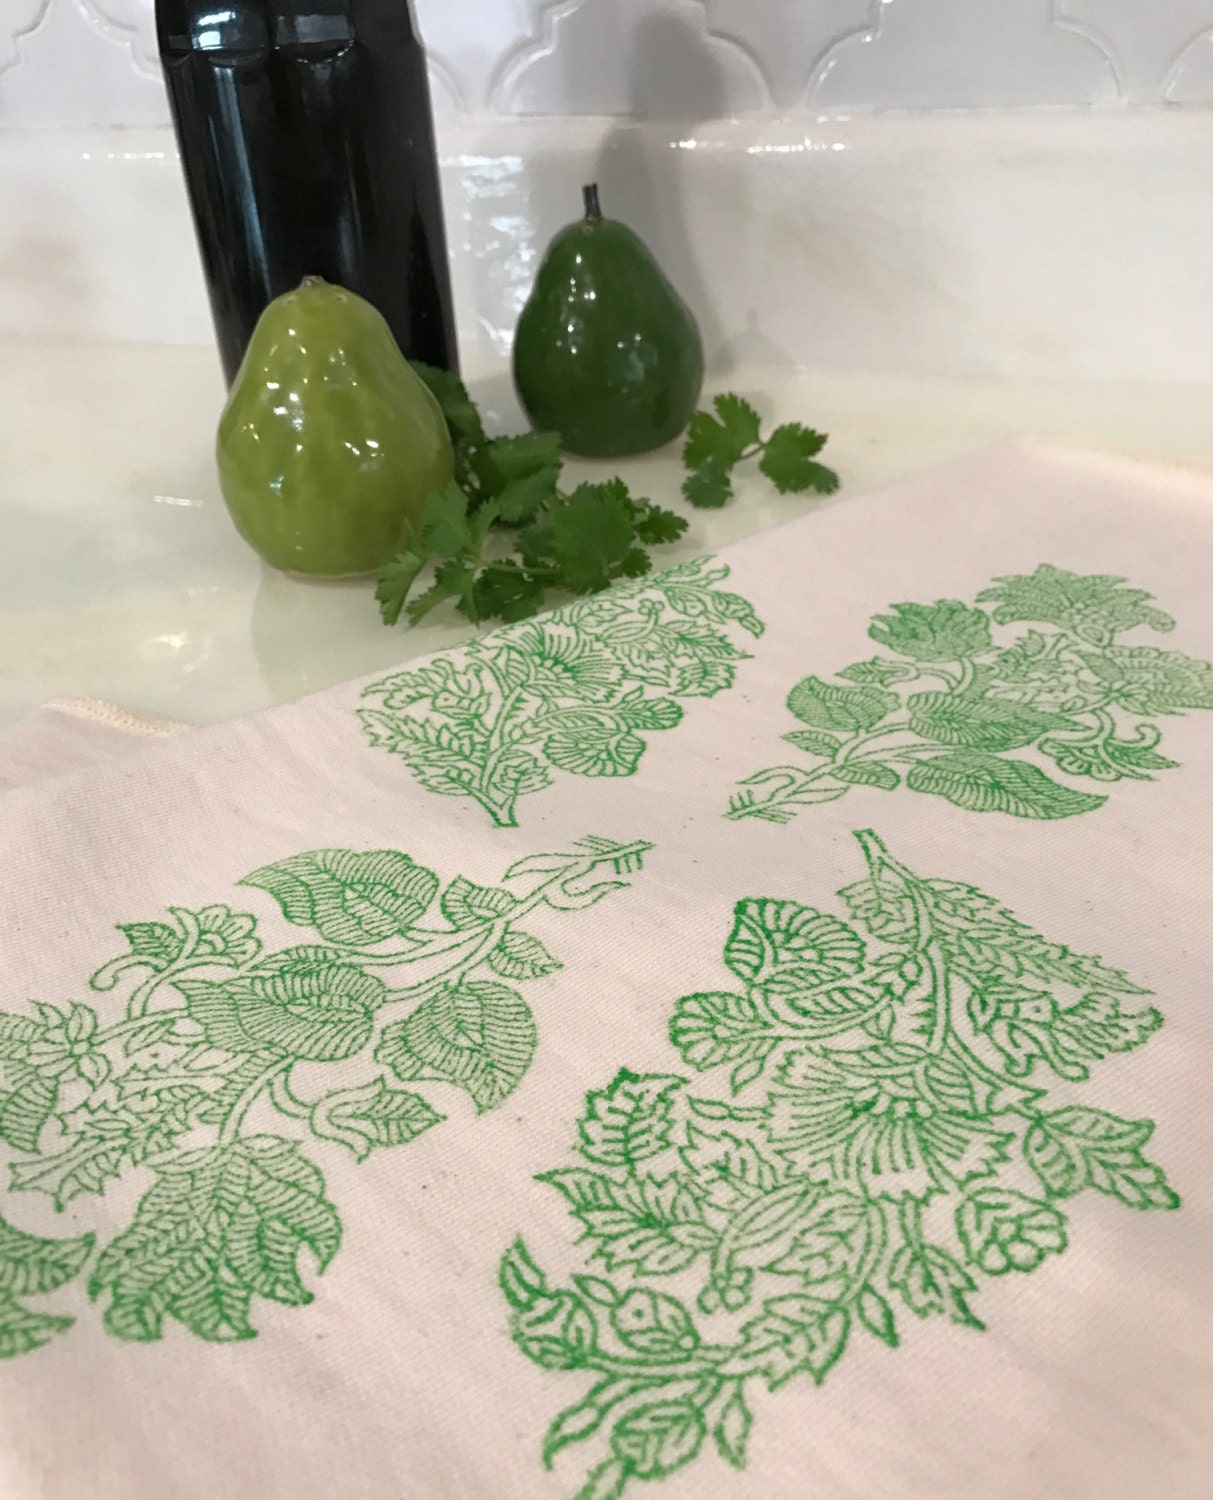 Dish towel / Hand / Tea / Dishcloths / Kitchen / Organic Cotton Terry / Green / Off White / Floral Hand Printed / Home Decor / Eco Friendly